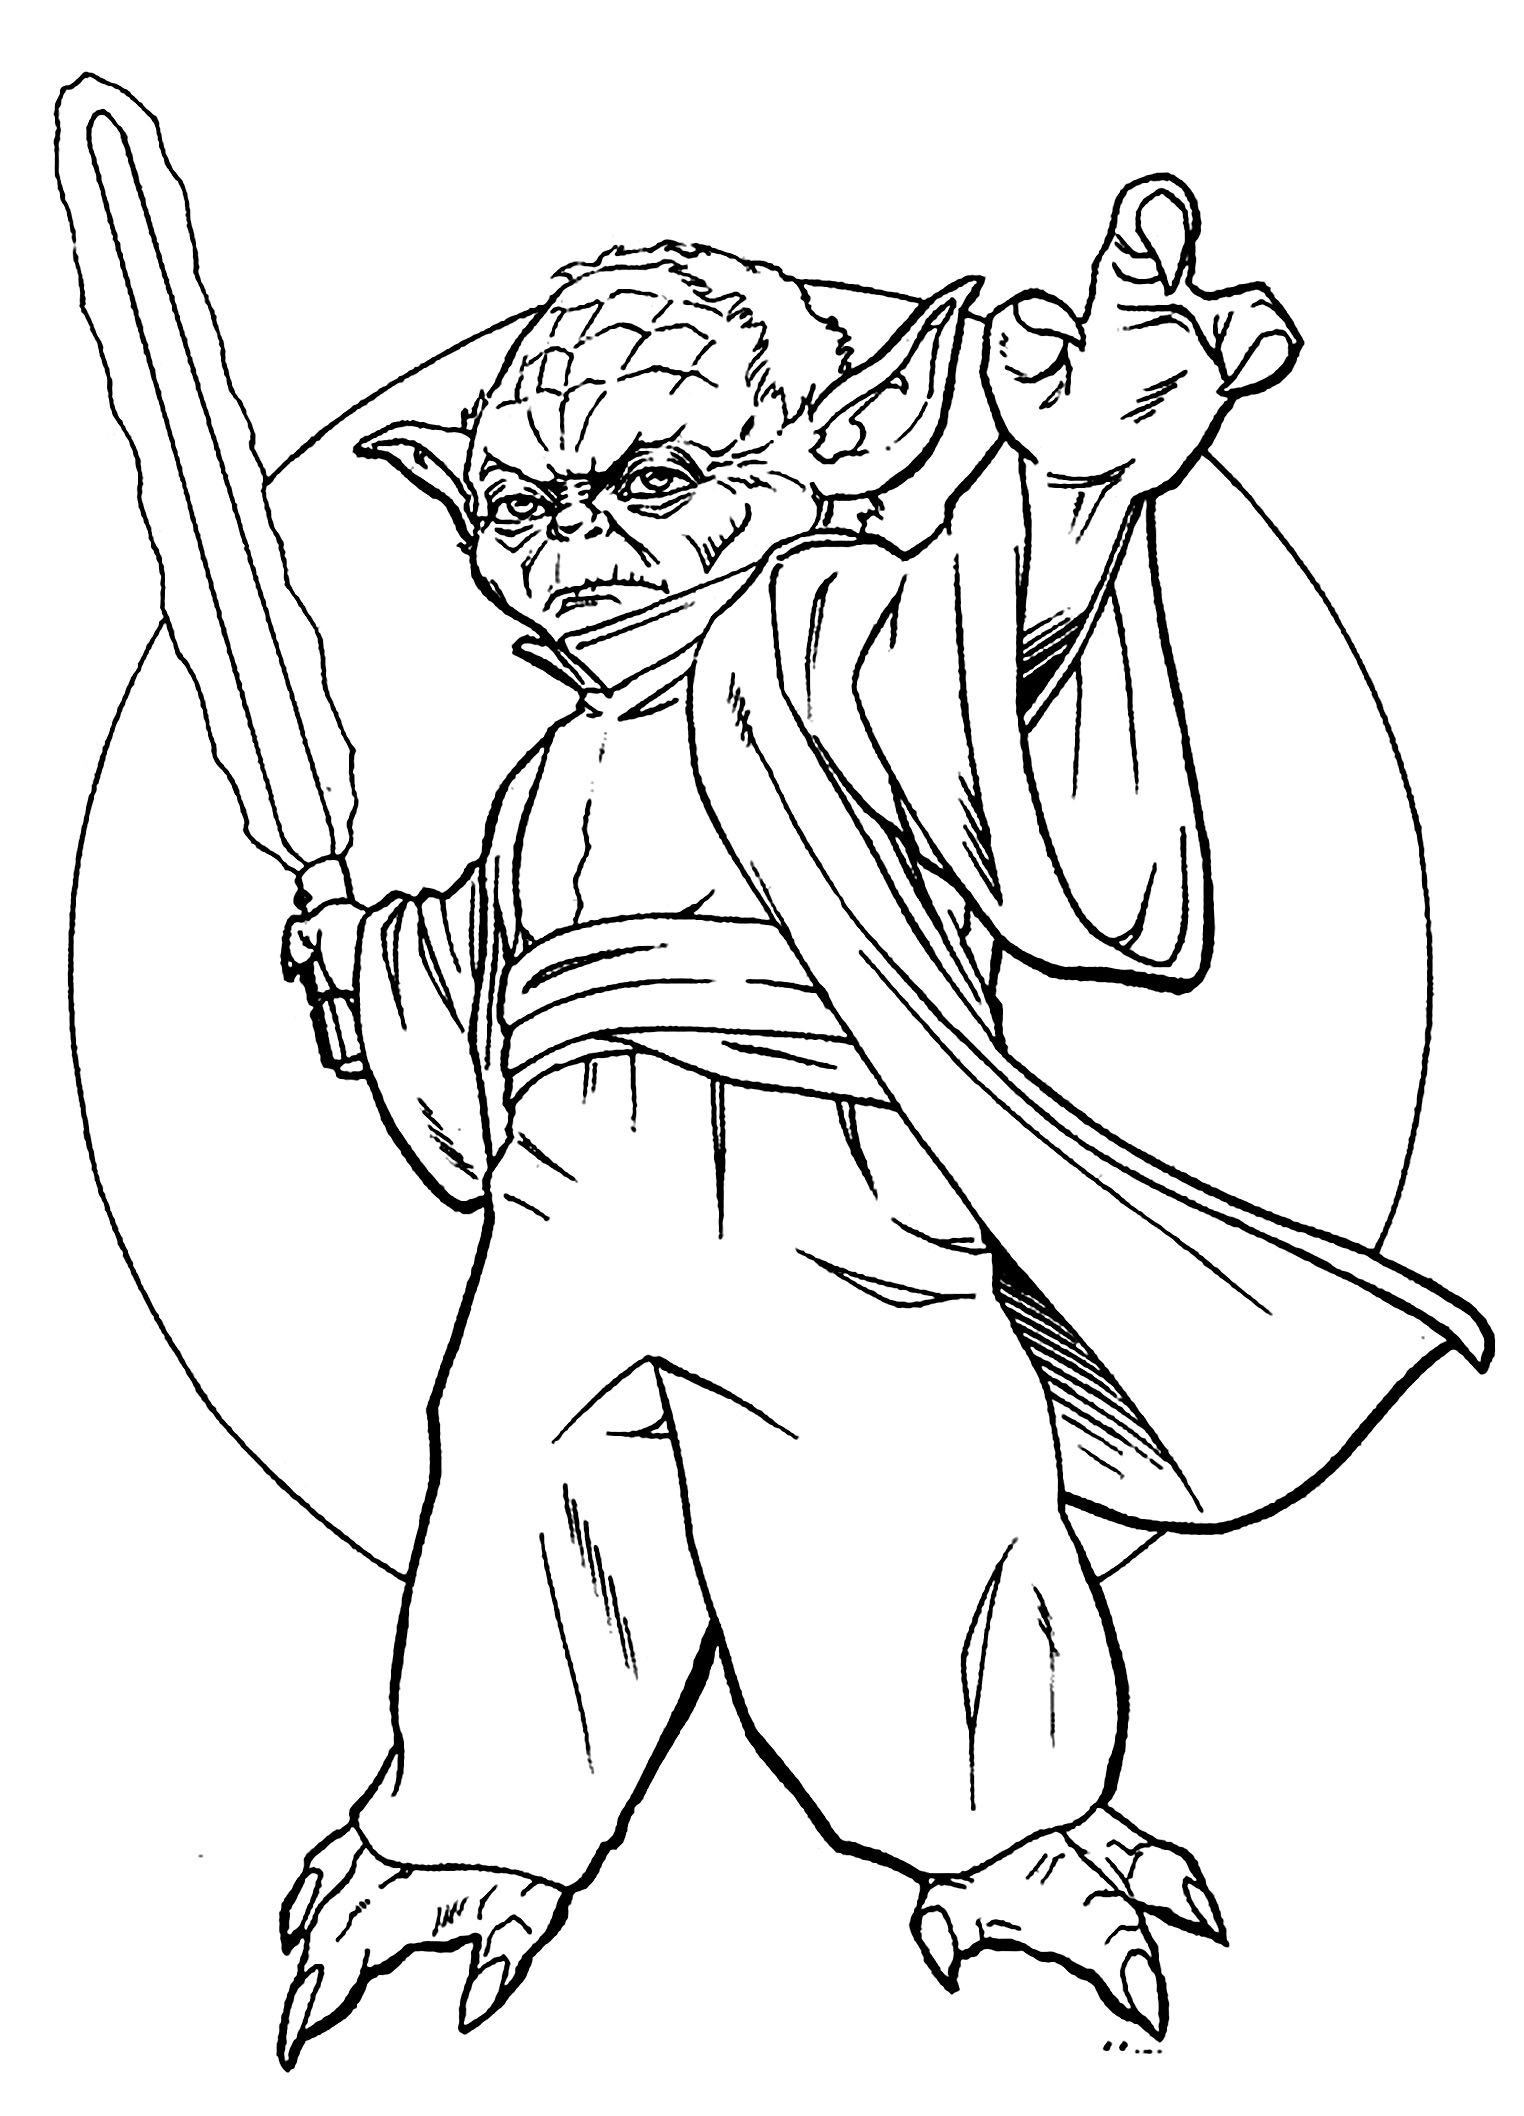 star wars coloring pages for kids cute coloring pages best coloring pages for kids coloring kids for star wars pages